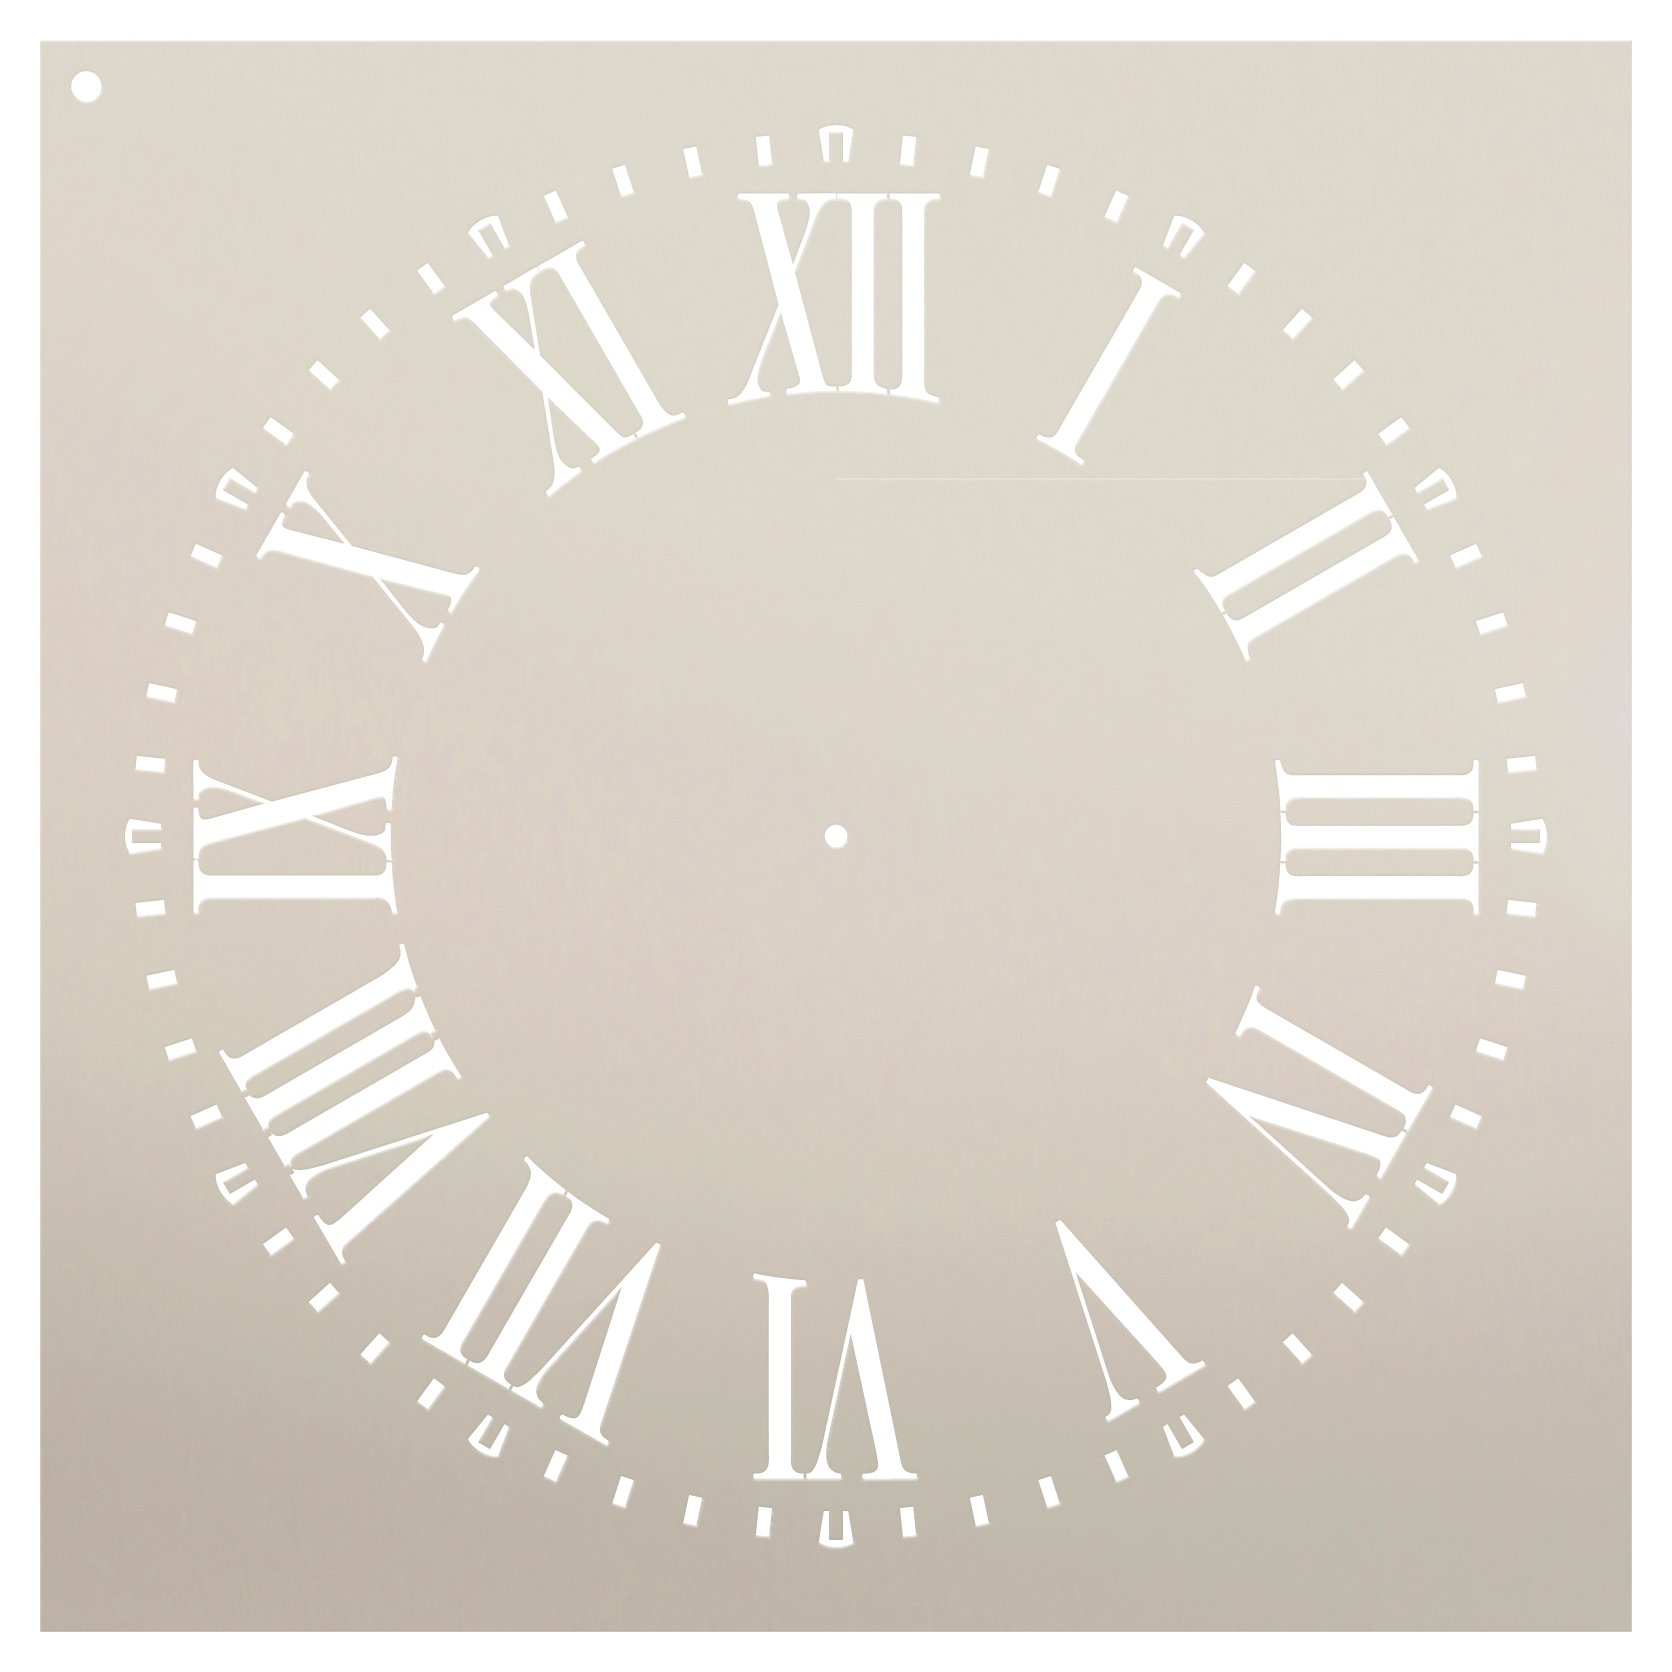 Farmhouse Clock Face Stencil by StudioR12 | Roman Numerals Clock Art - Reusable Mylar Template | Painting, Chalk, Mixed Media | DIY Decor - STCL2336 - Select Size (24'' Diameter)